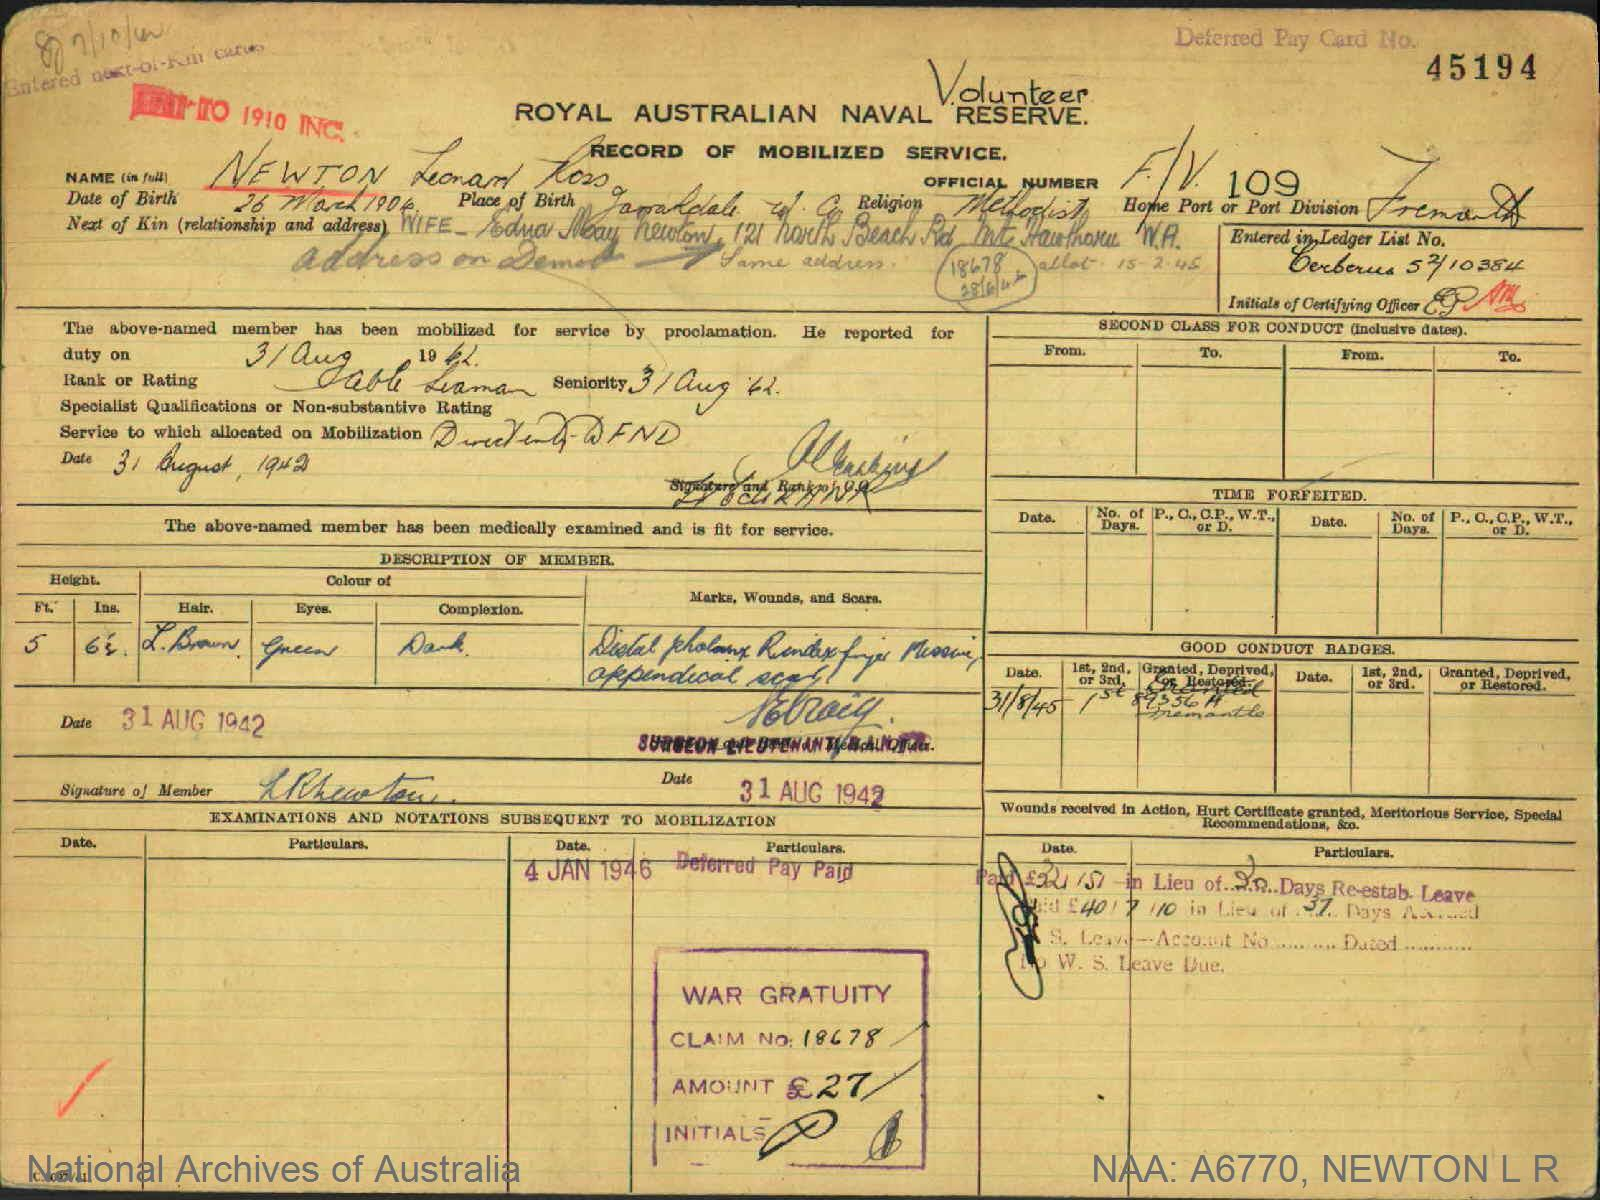 NEWTON LEONARD ROSS : Service Number - F/V109 : Date of birth - 26 Mar 1904 : Place of birth - JARRAHDALE WA : Place of enlistment - FREMANTLE WA : Next of Kin - NEWTON EDNA